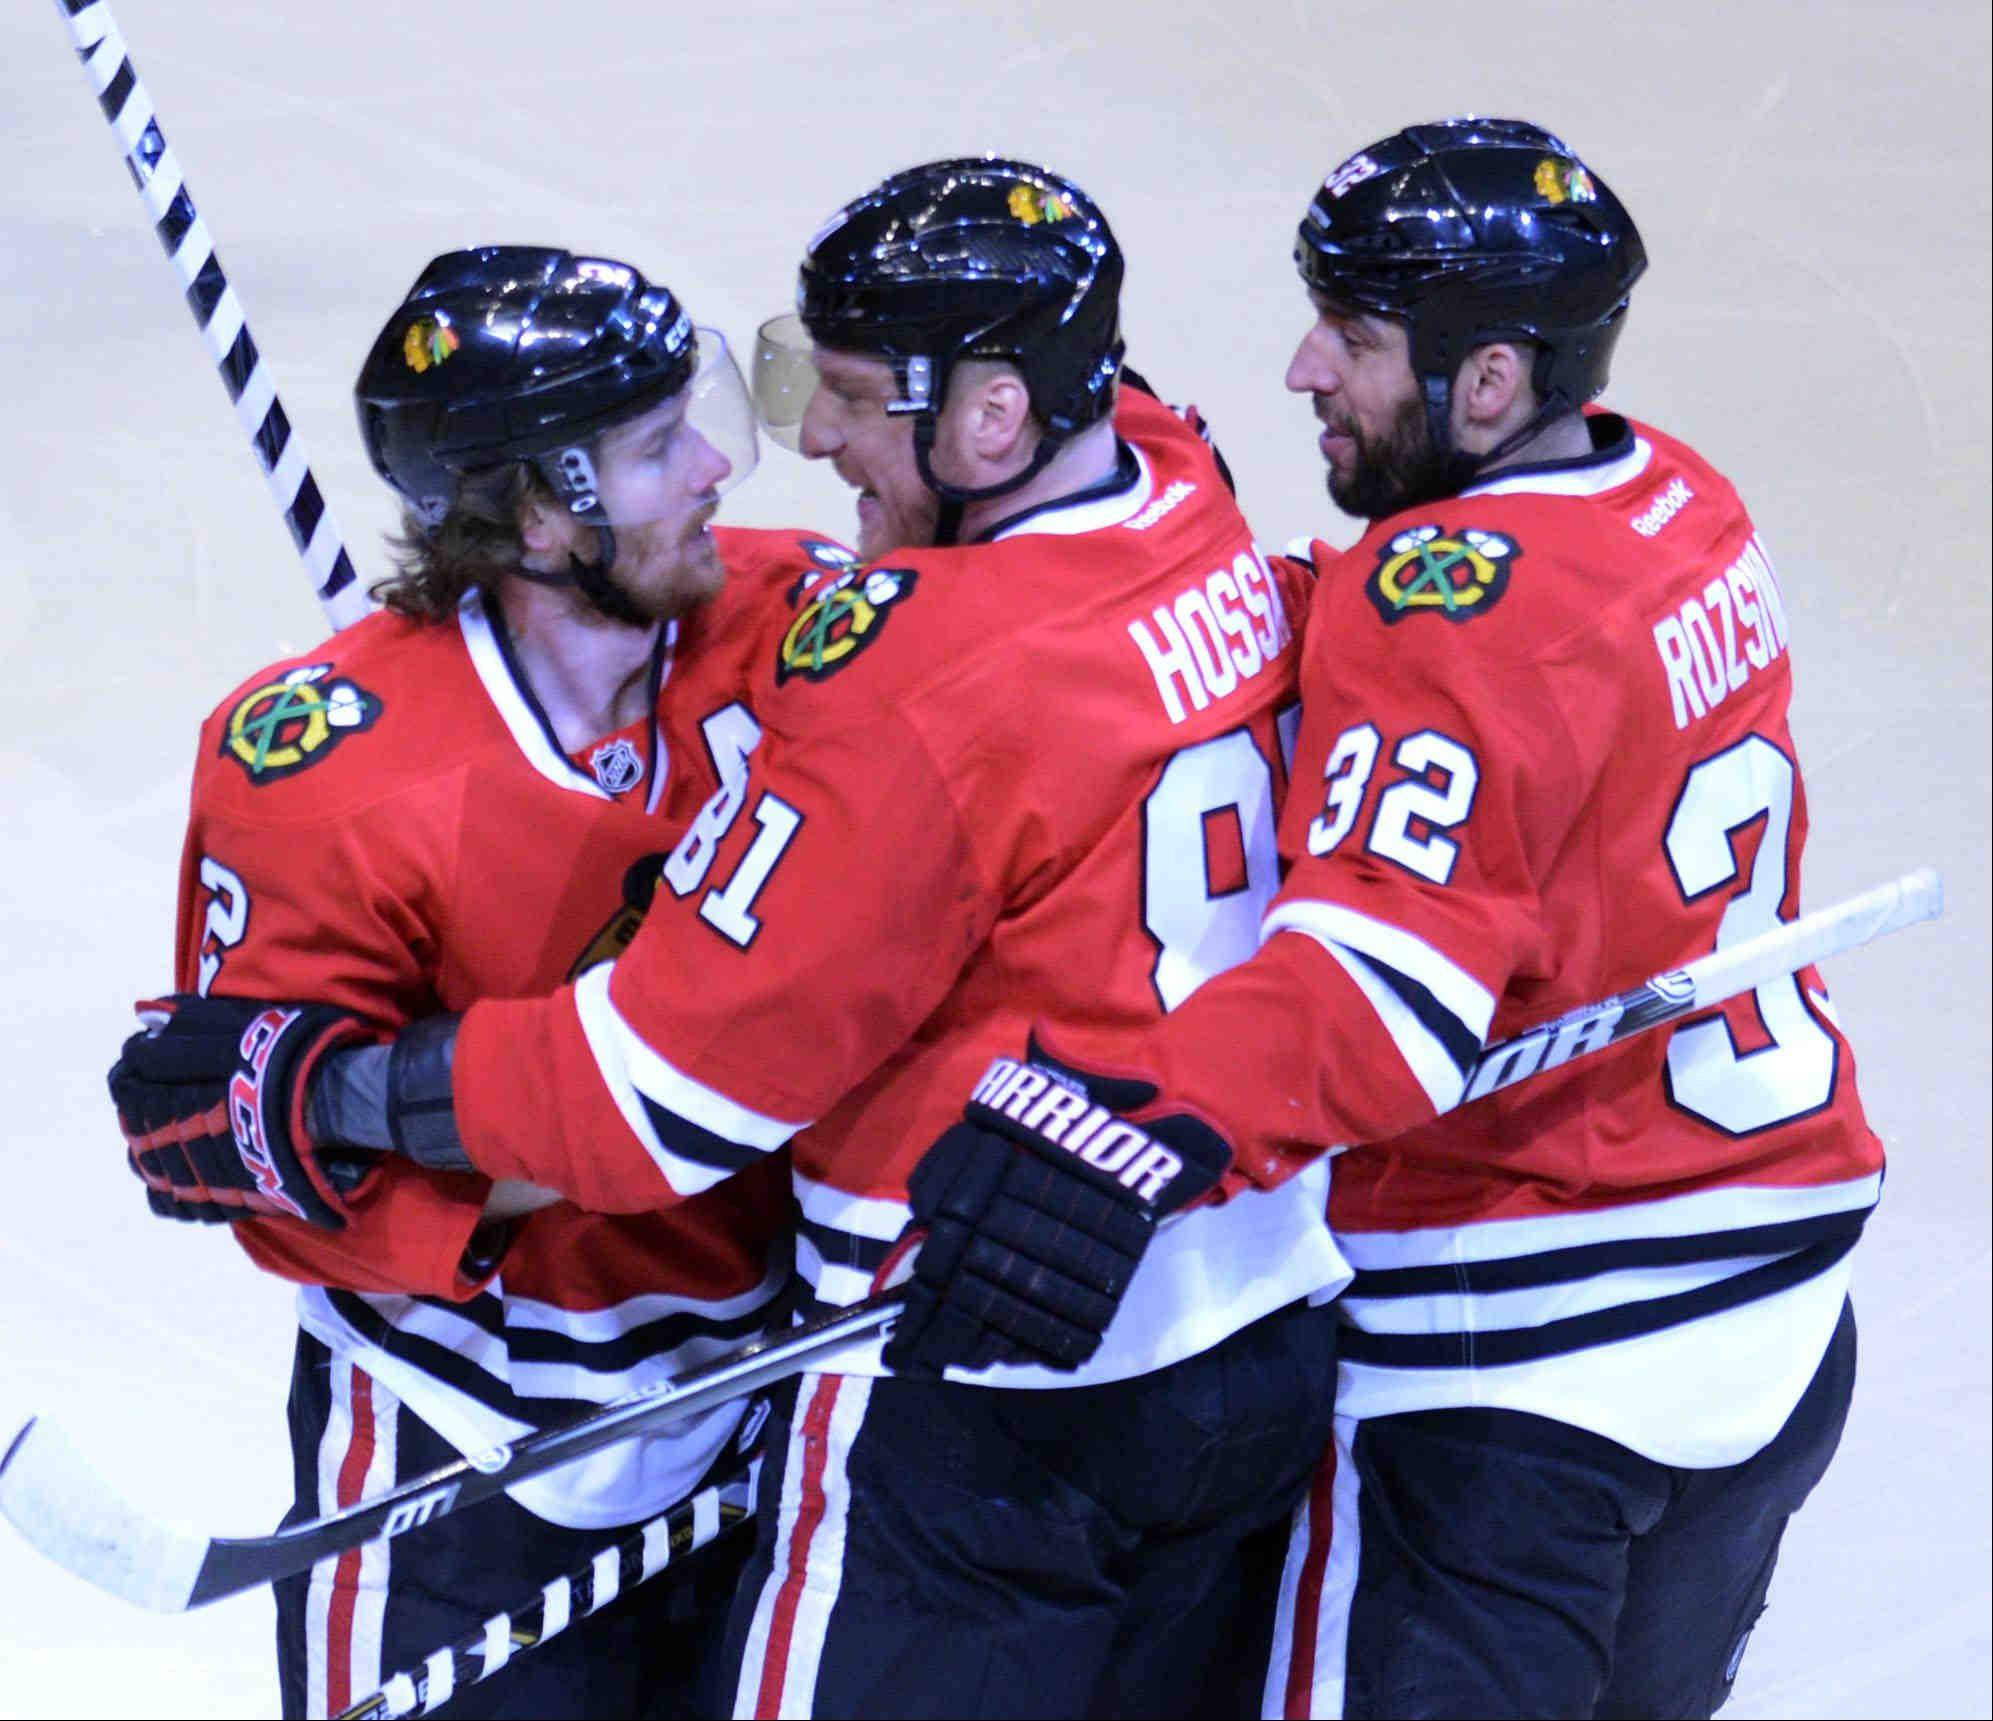 John Starks/jstarks@dailyherald.comChicago Blackhawks defenseman Duncan Keith is congratulated by teammates Marian Hossa and Michal Rozsival after his first period goal against the Los Angeles Kings Saturday during the NHL Western Conference Finals Game 5 at the United Center in Chicago.